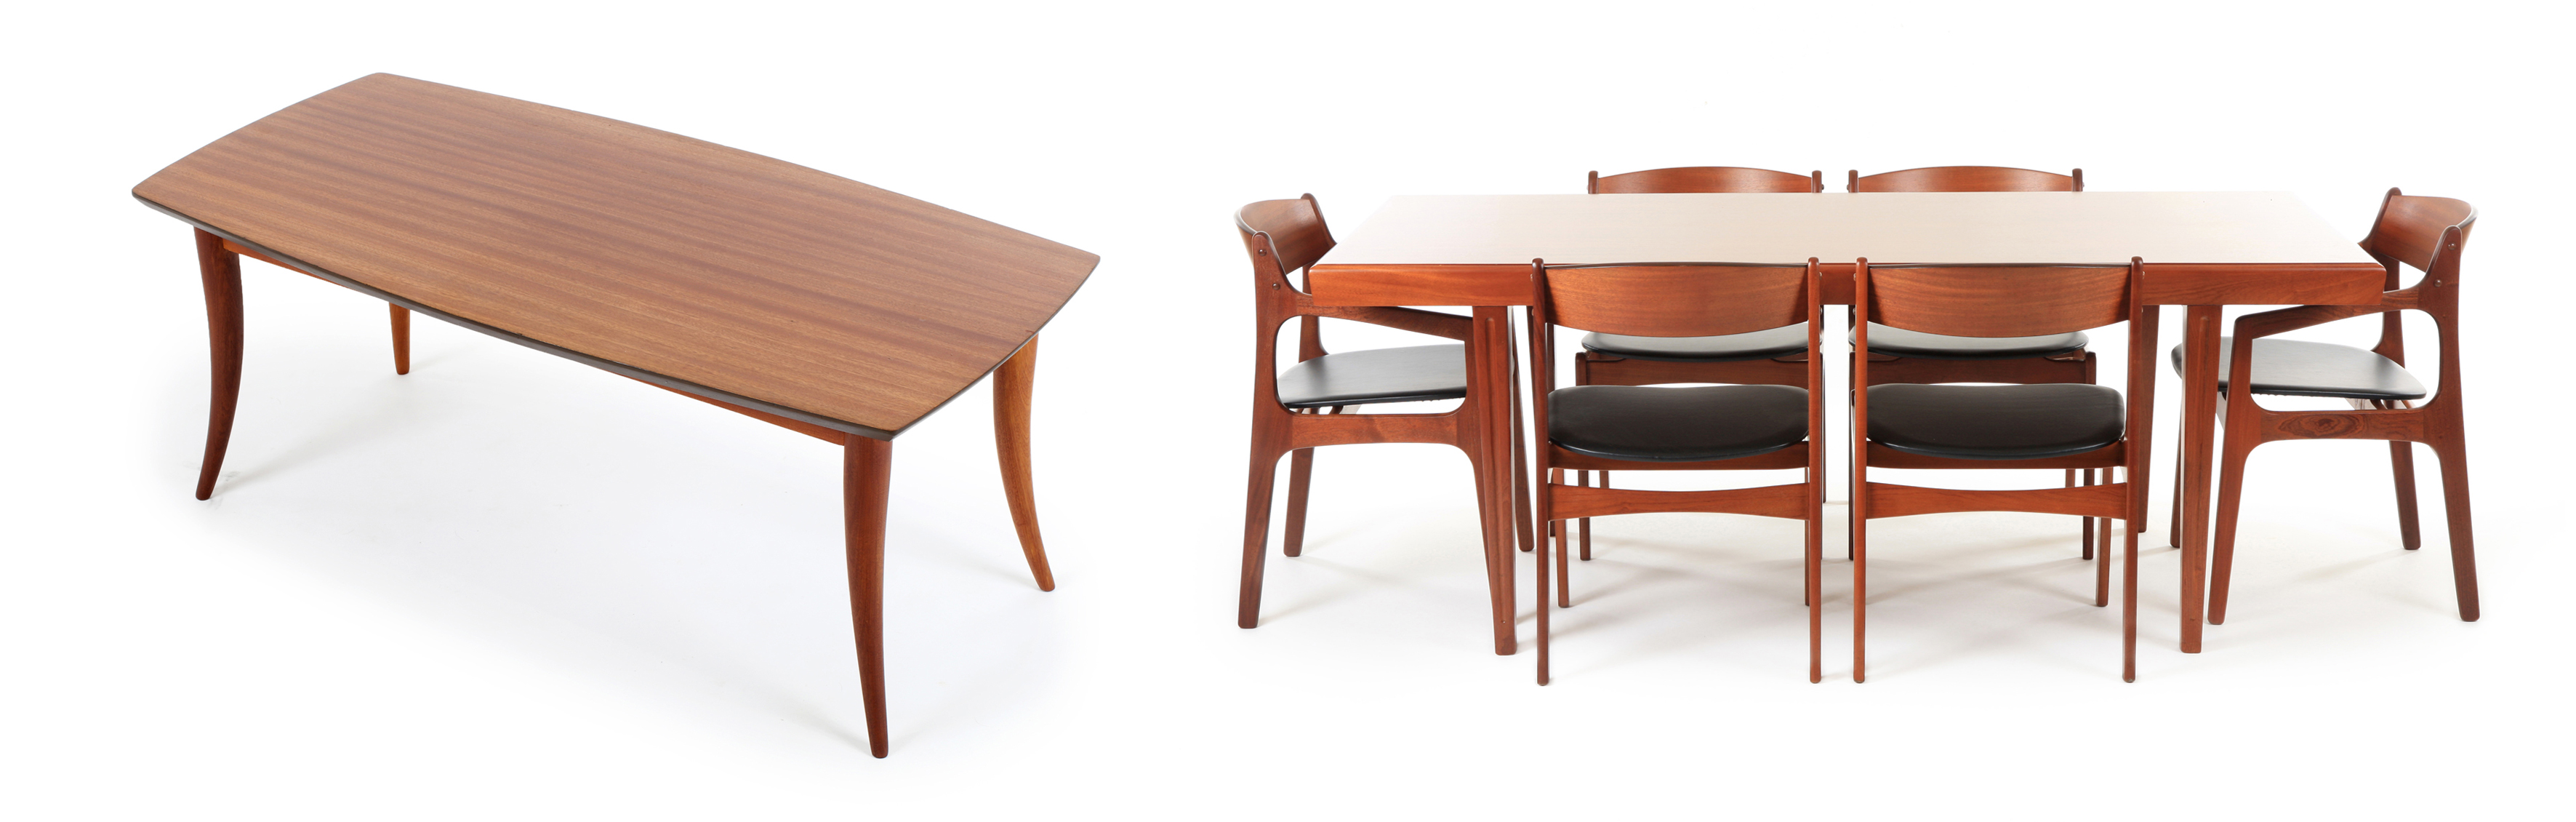 Left: Airest ('The Furniture with a Future') sabre leg coffee table: founded by Ces Renwick in 1948, the company would become one of New Zealand's largest furniture manufacturers by the late 60s. Right: Otto Larsen dining suite: Larsen produced an astonishing array of designs, often referencing work from his homeland. Photos © Mr.Bigglesworthy